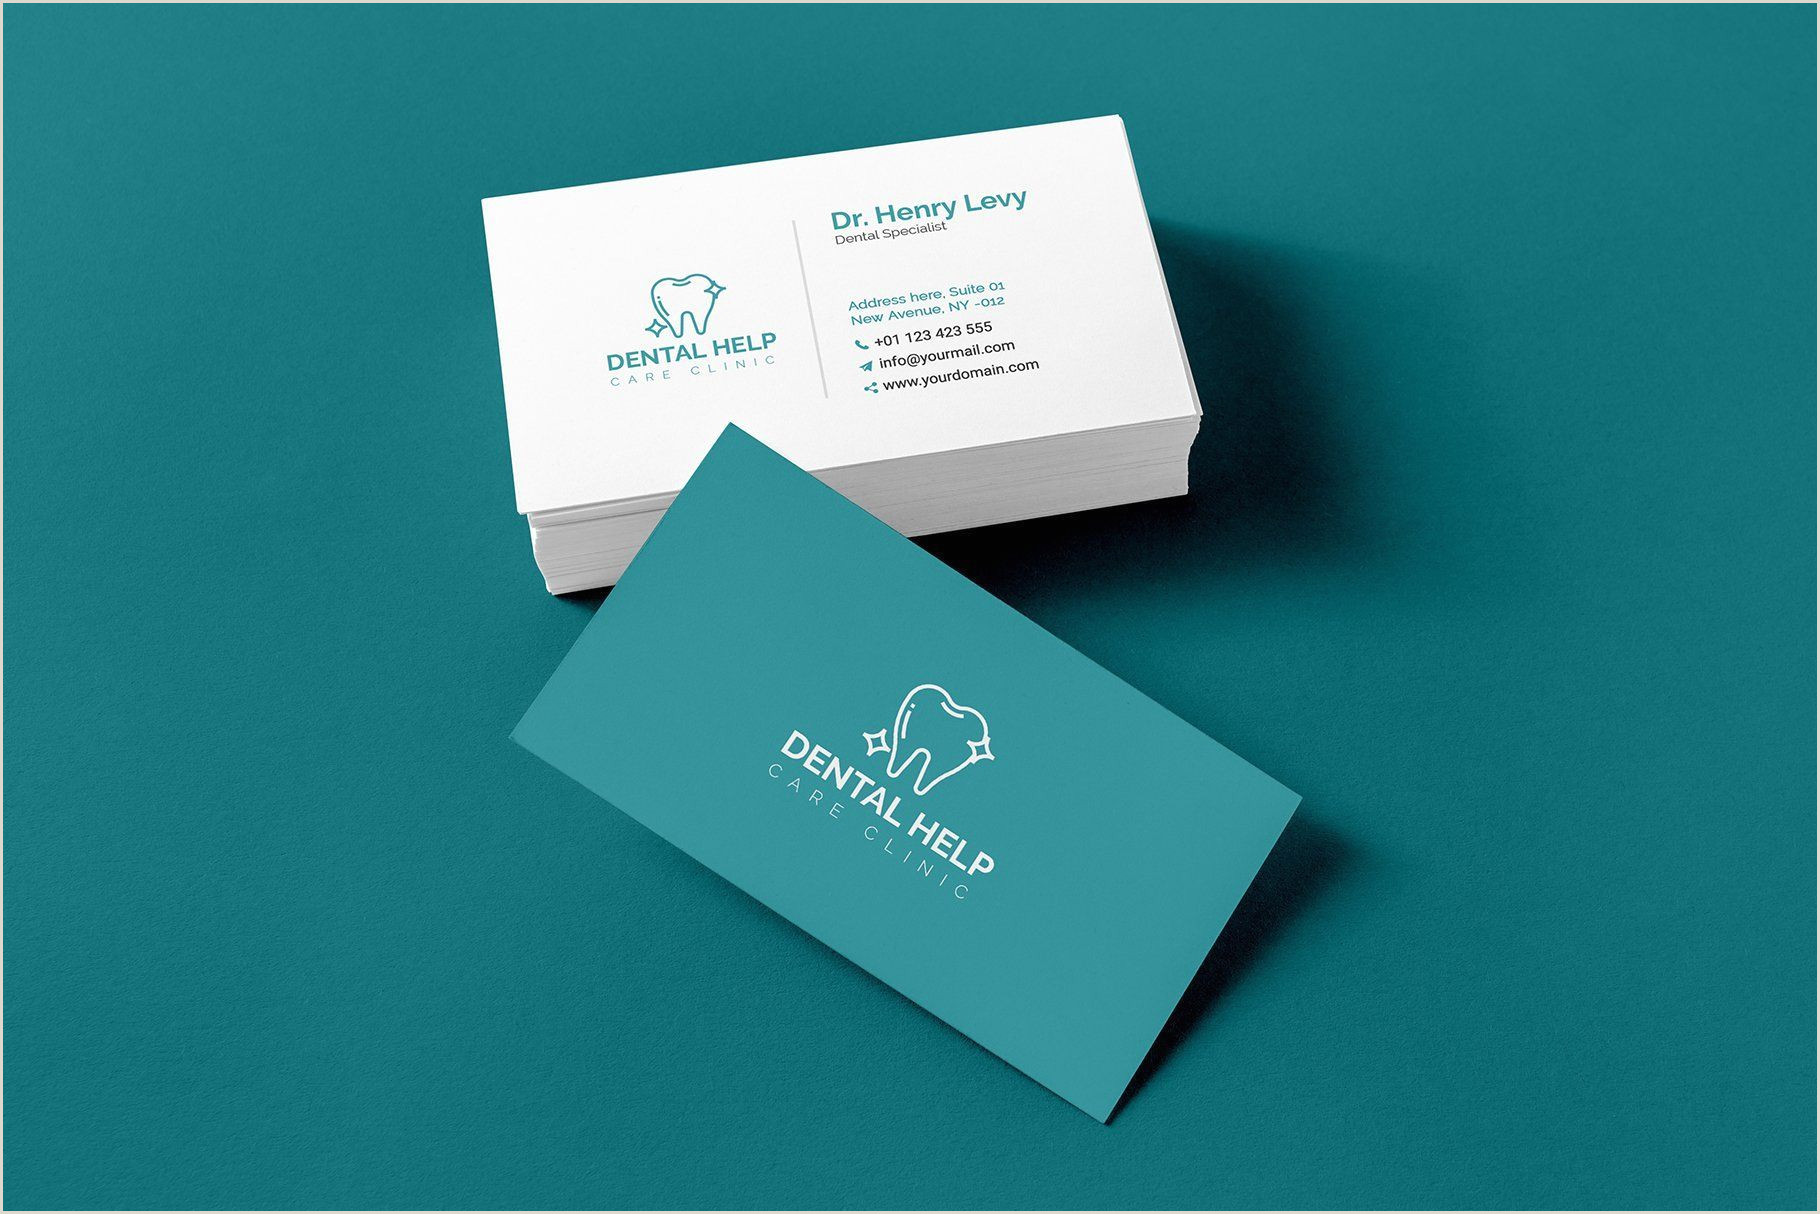 Personal Business Card Dentist Business Card Templates In 2020